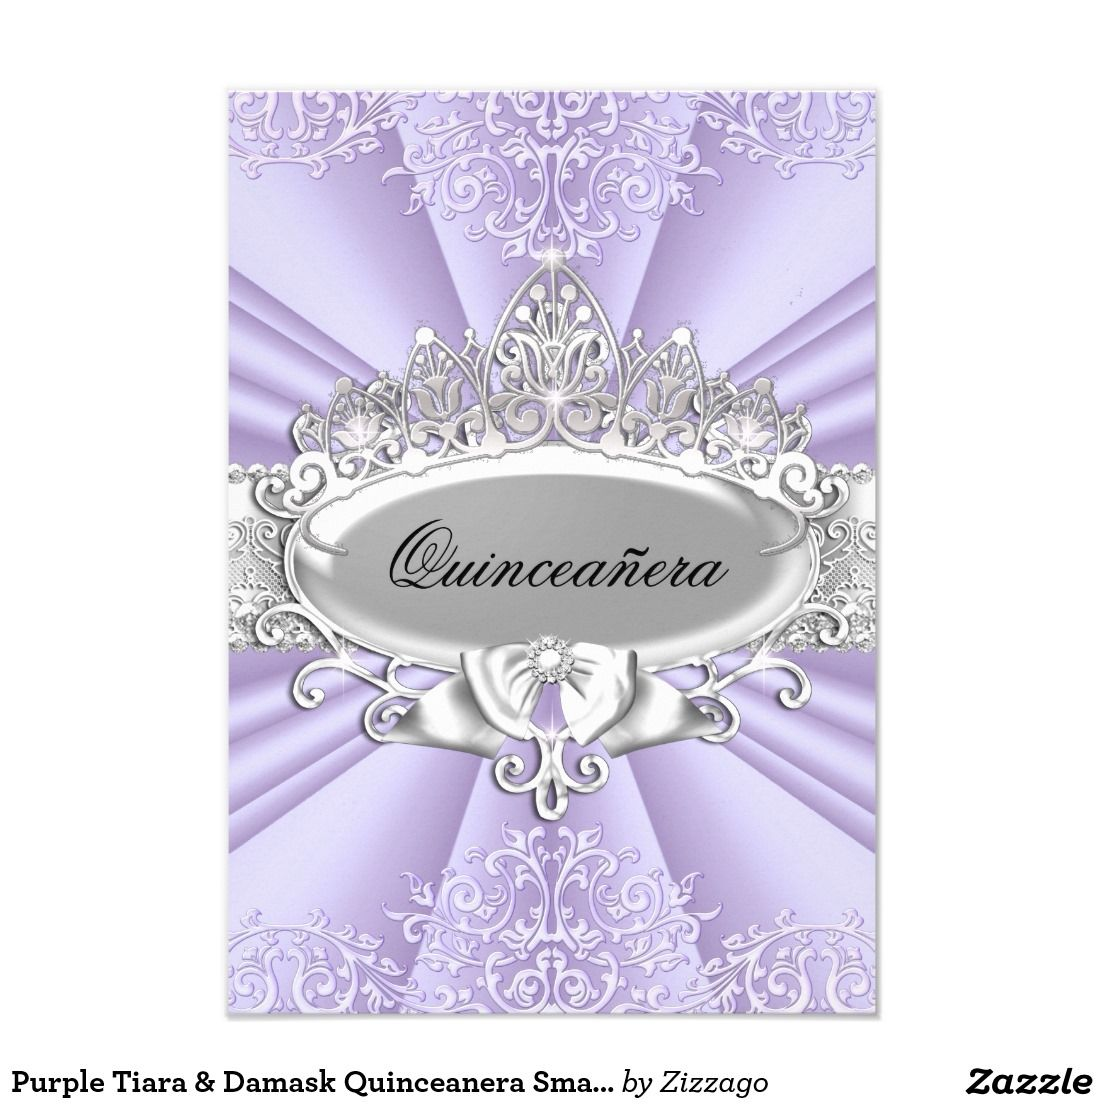 Purple Tiara Damask Quinceanera Small Size Invitation